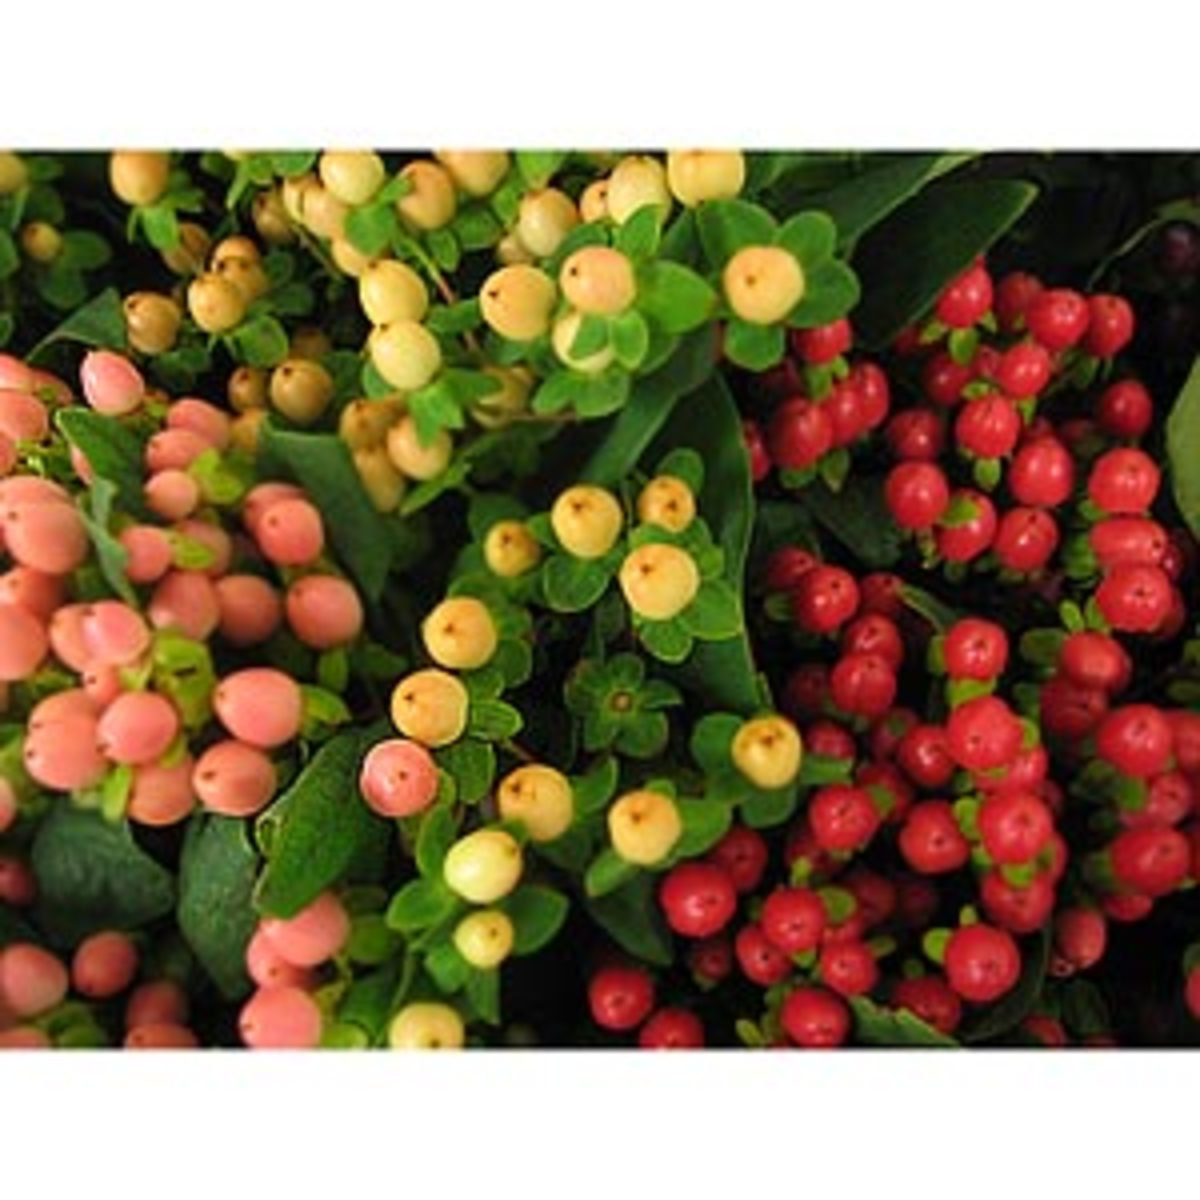 Did you know you could get such beautiful hypericum berries from a place like Costco or your local supermarket?